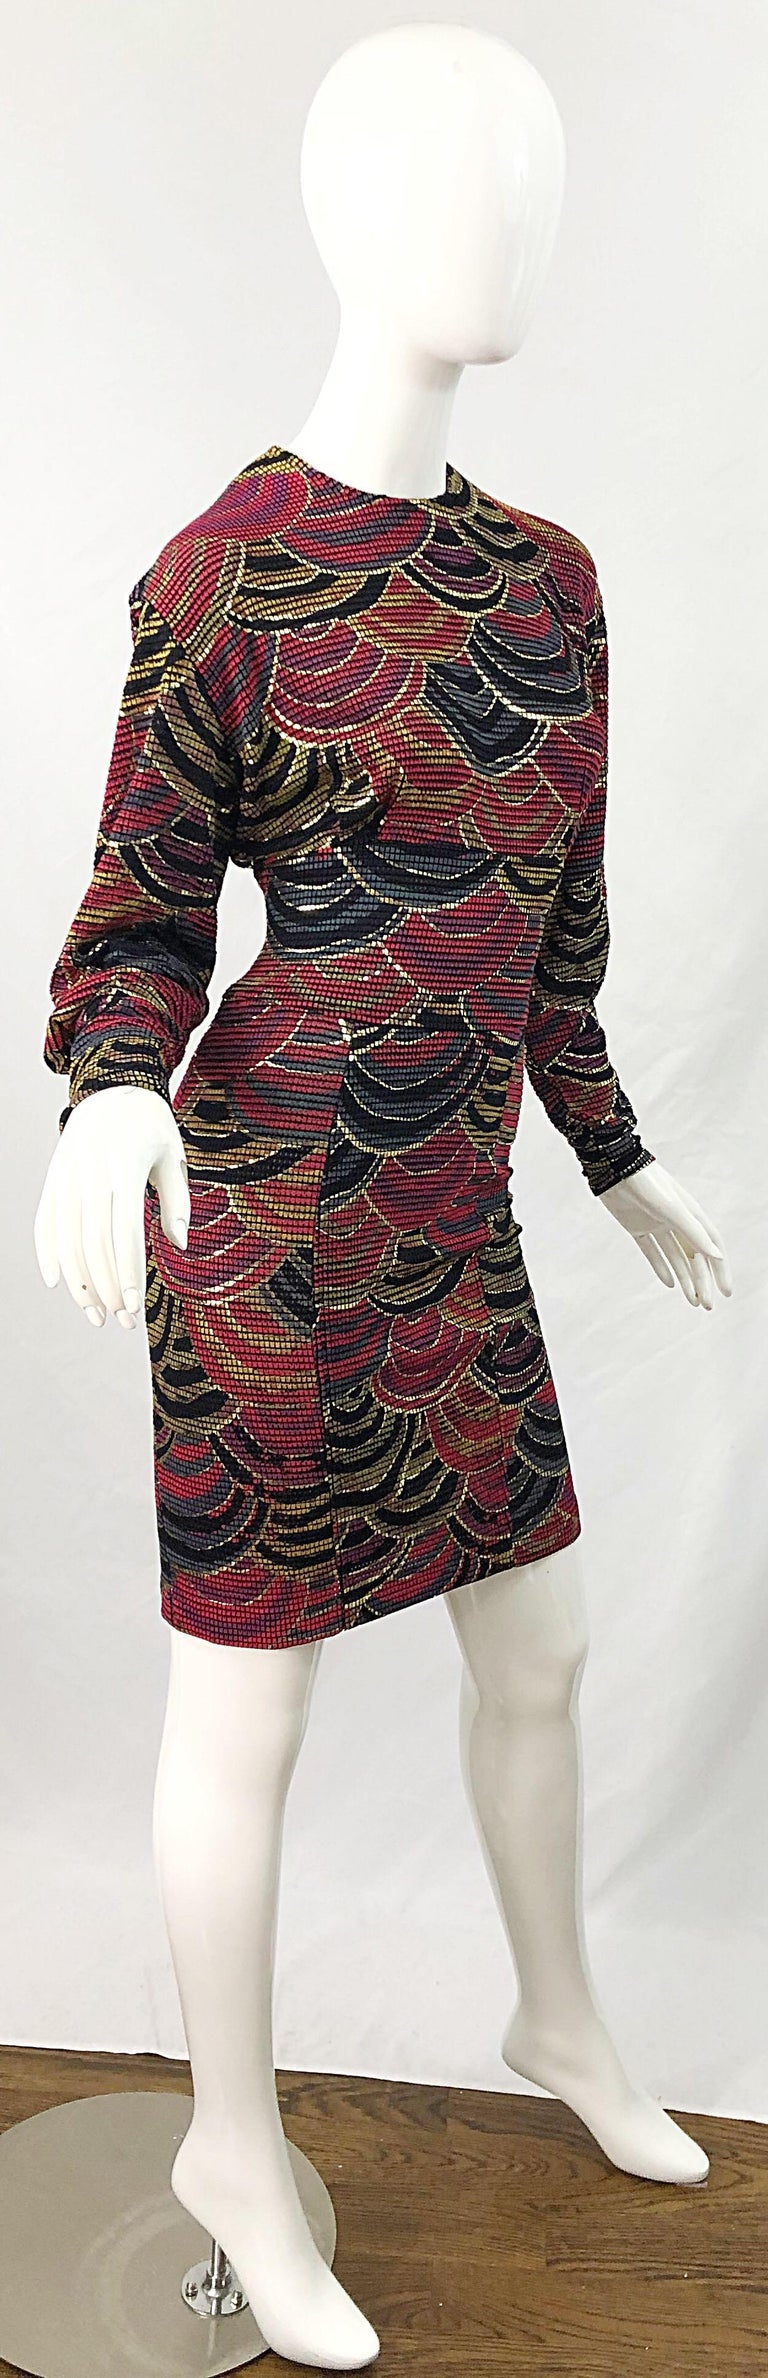 1980s Hand Painted Reversible Red + Gold + Green Vintage 80s Avant Garde Dress For Sale 1